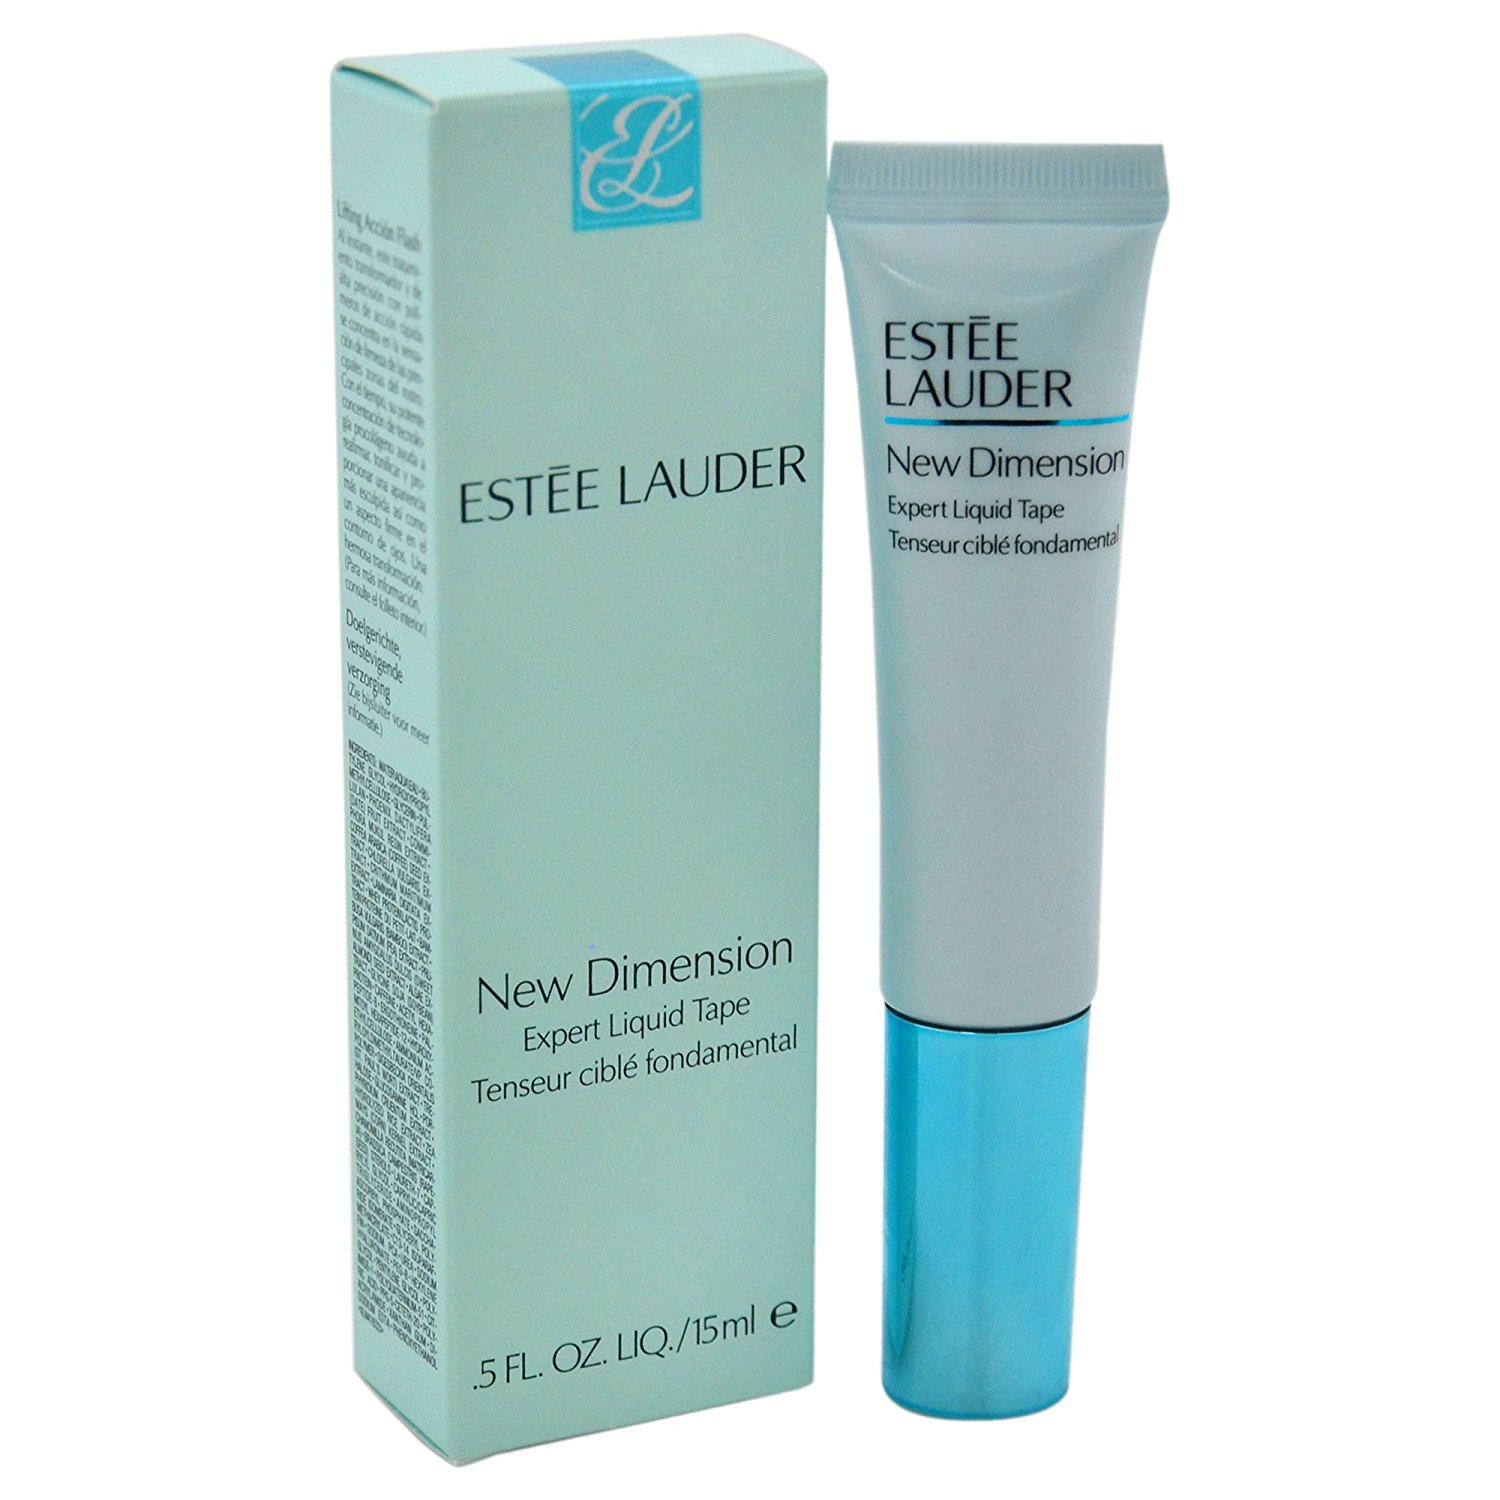 ESTEE LAUDER NEW DIMENSIONS EXPERT LIQUID TAPE CONTORNO DE OJOS 15 ML